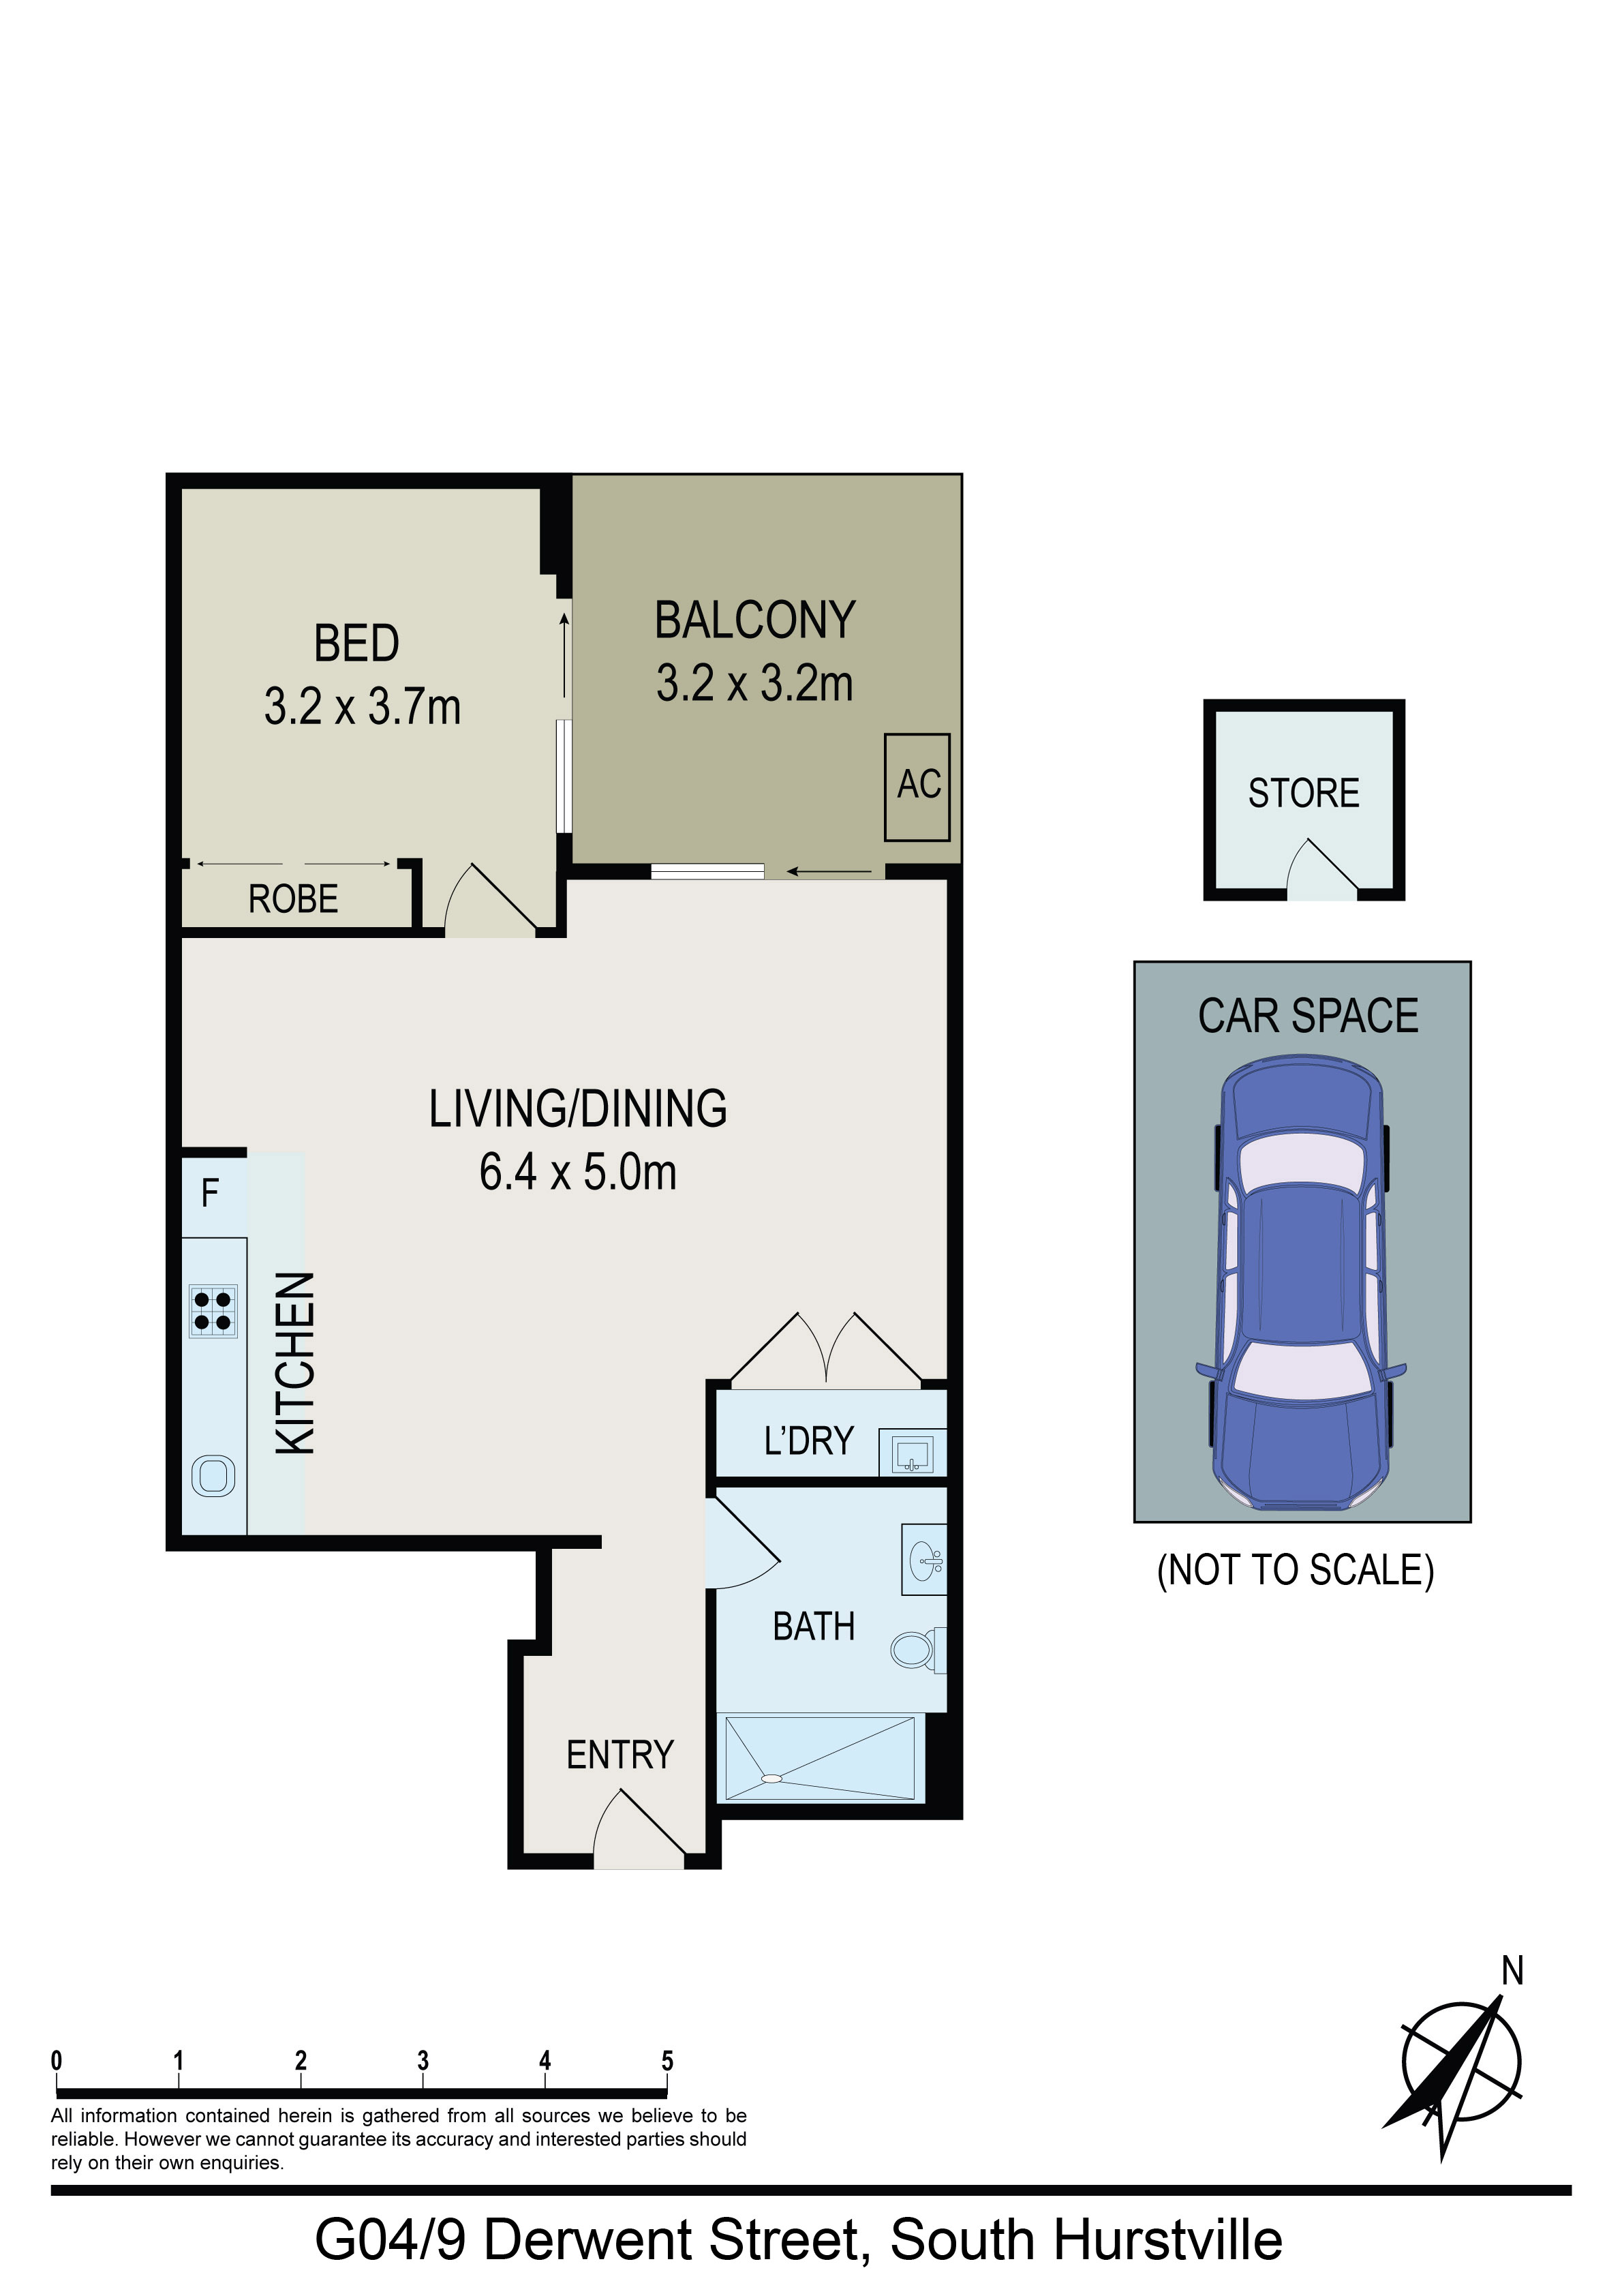 Image: Brand new one bedroom apartment